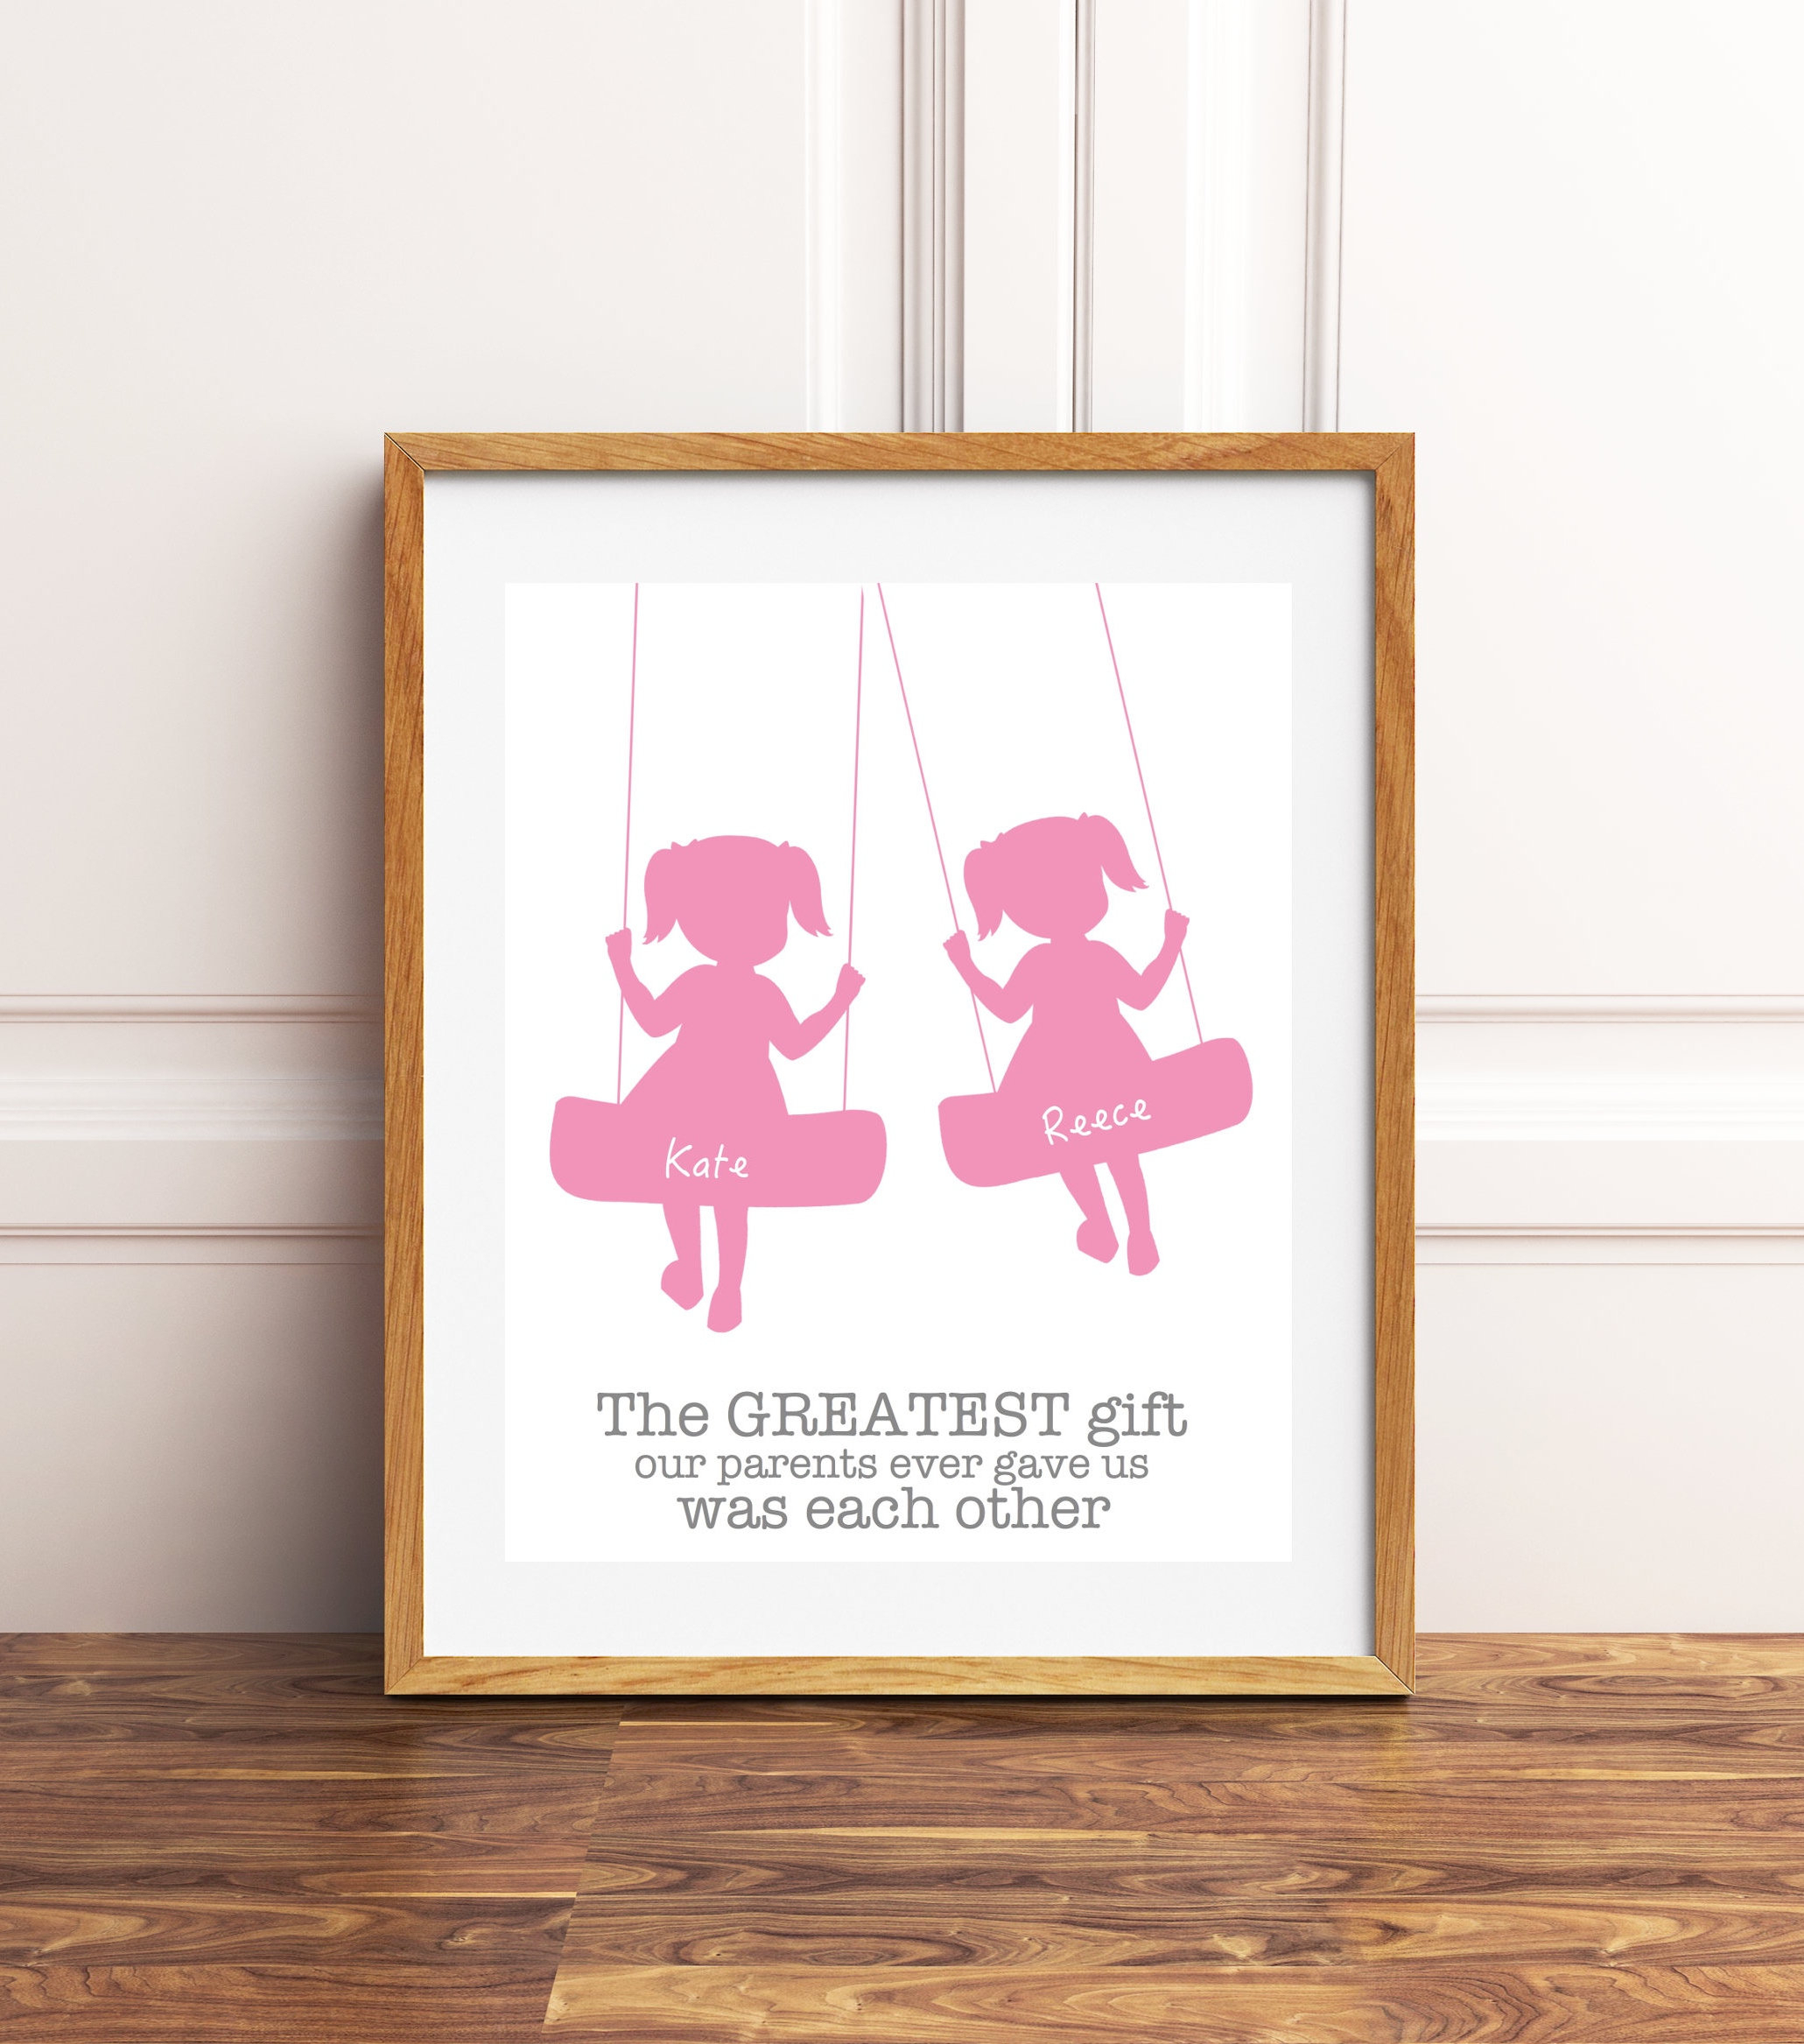 Two Sisters Wall Art, Twin Girls, Twins Wall Art, Kids On Swing, New Mom Gift, Twins Gift Personalized Kids Art, The Greatest Gift In Rhys Turtle Decor Wall Decor (View 24 of 30)